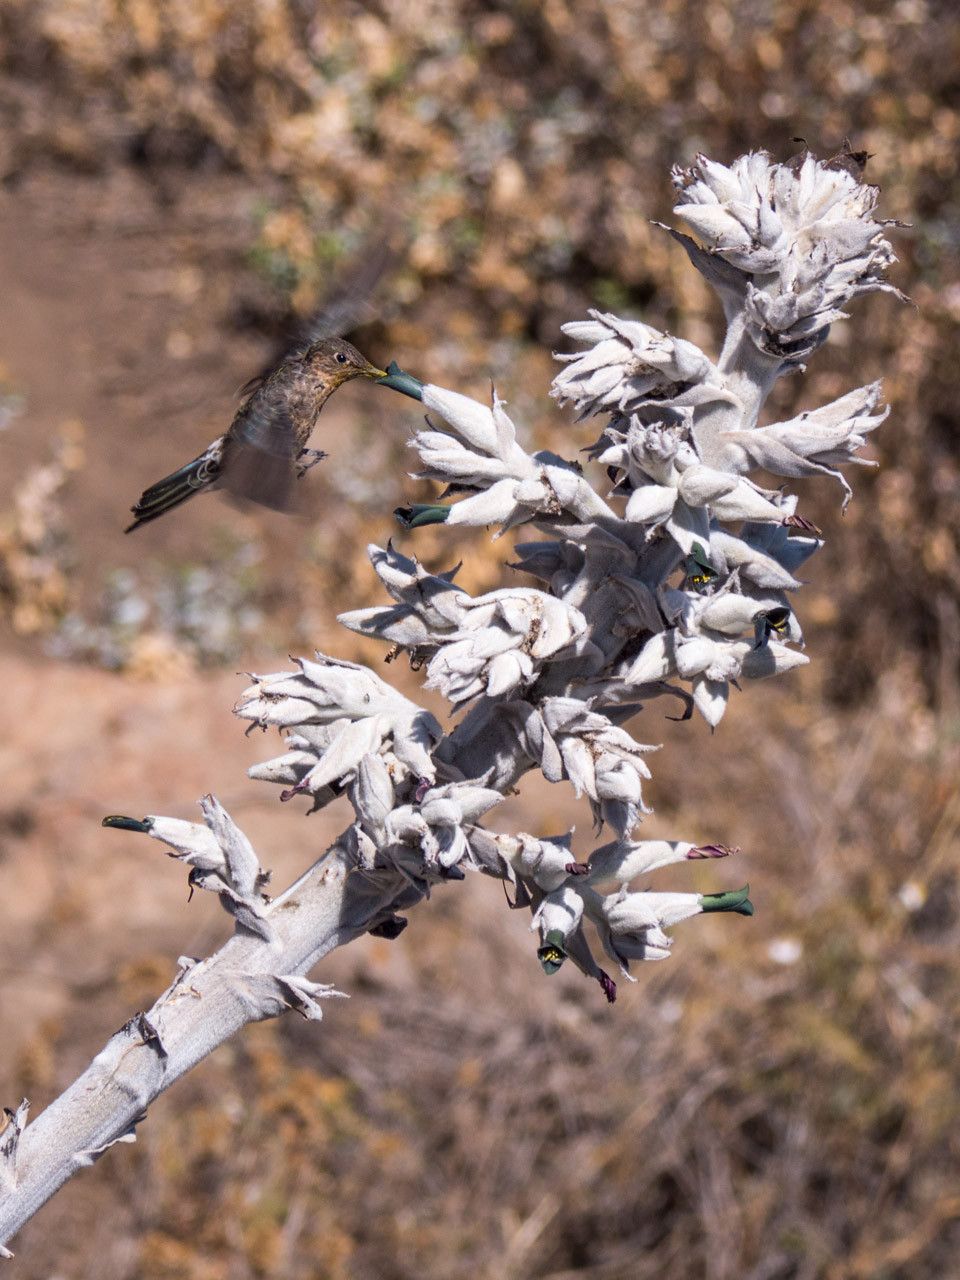 Giant hummingbird at Colca canyon, Mirador Cruz del Condor [Peru, 2014]